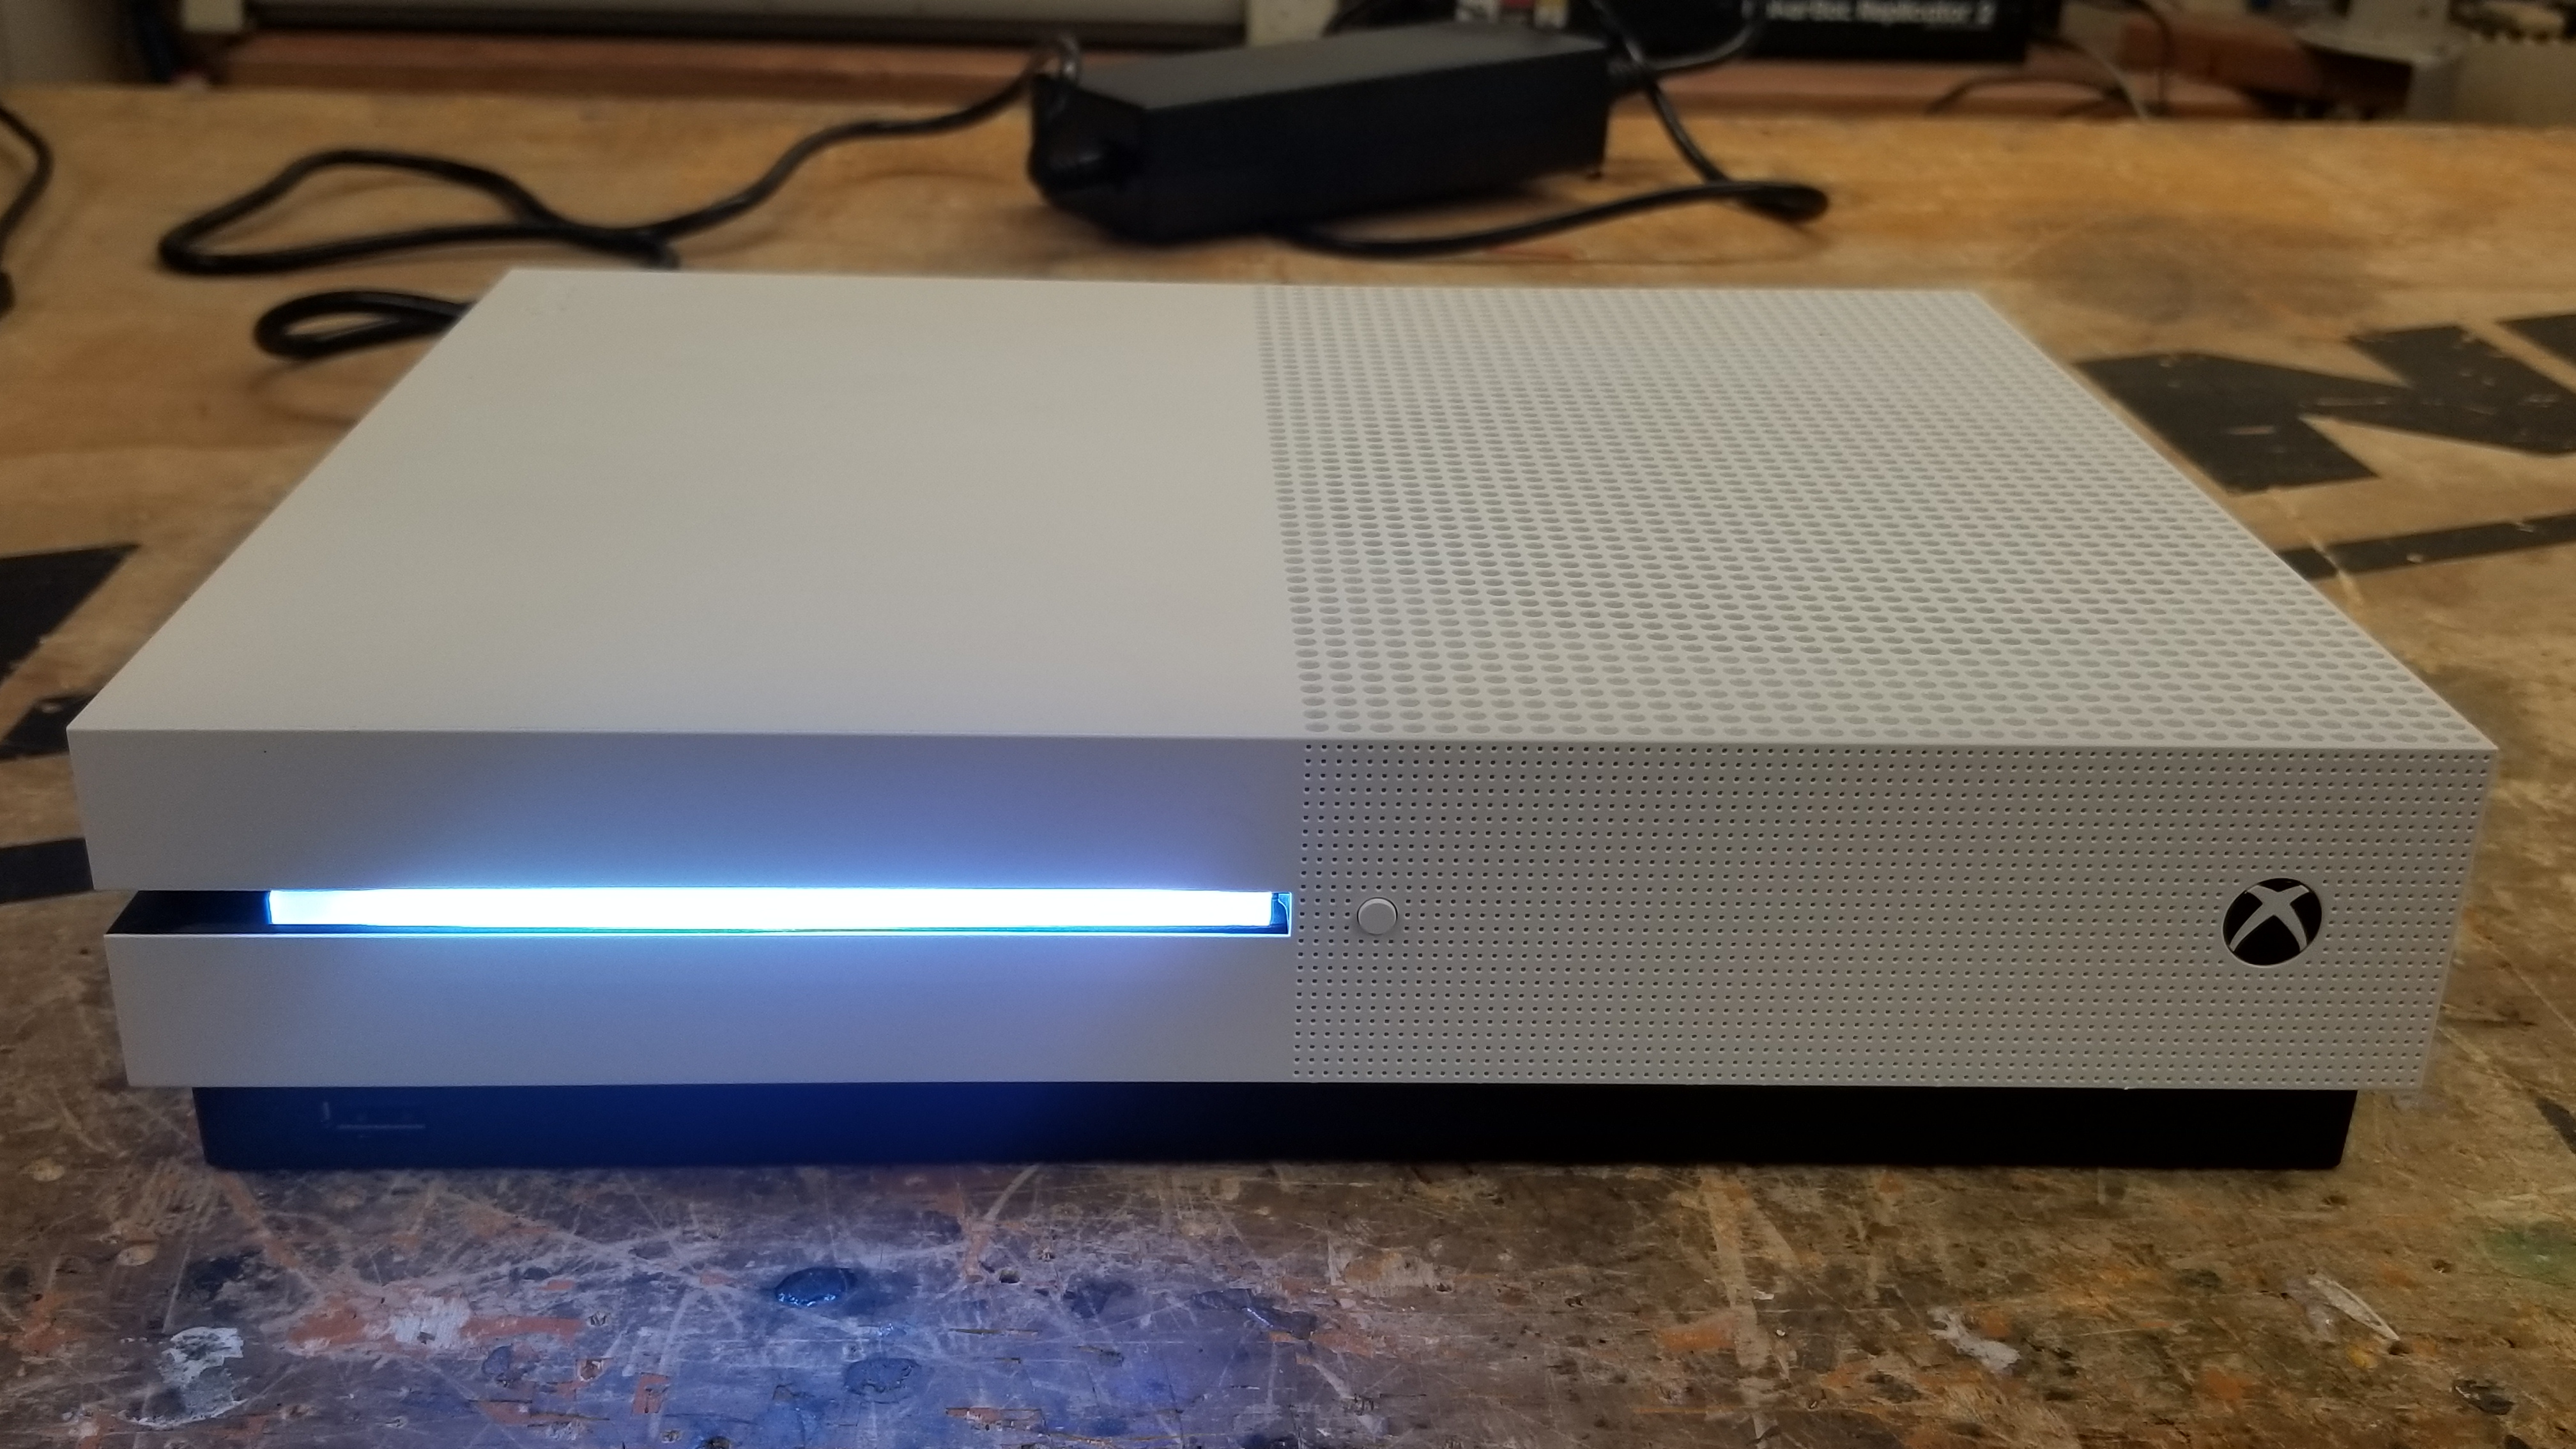 Xbox One S Converted Into A Gaming Theater Pc Motherboard 360 Parts List Intel Core I3 7100 39ghz Dual Processor Thermaltake Clp0534 224 Cfm Cpu Cooler Msi B250i Pro Ac Mini Itx Lga1151